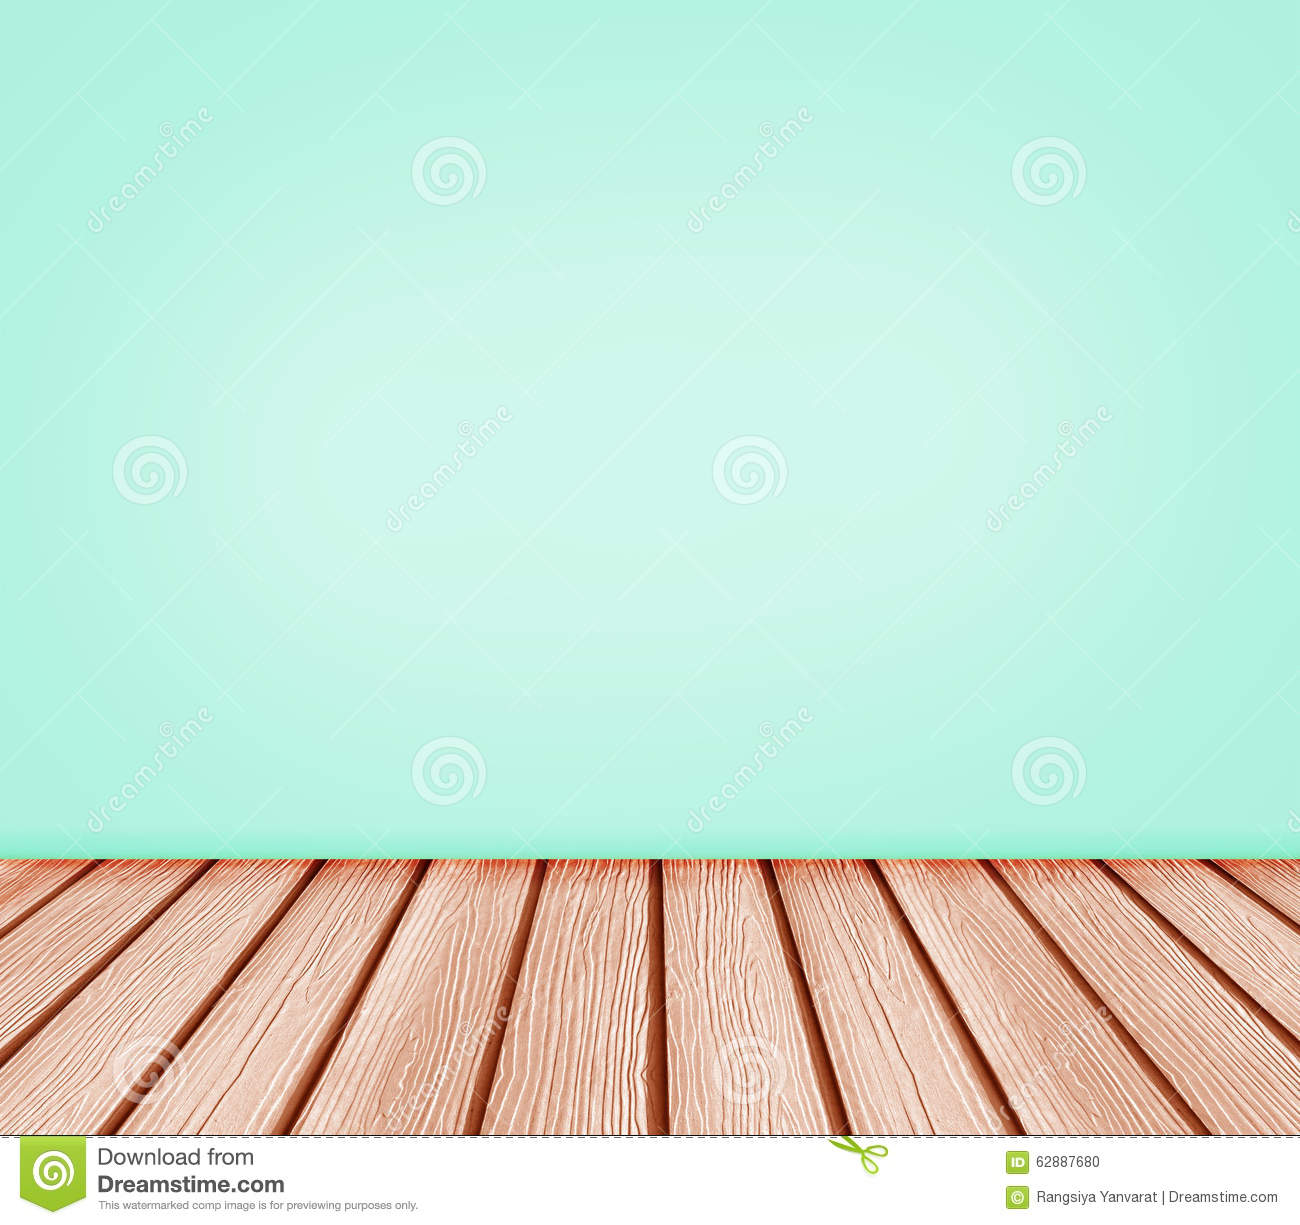 Studio Apartment 3d Floor Plans Wood Floor And Blue Green Wall Background Stock Photo